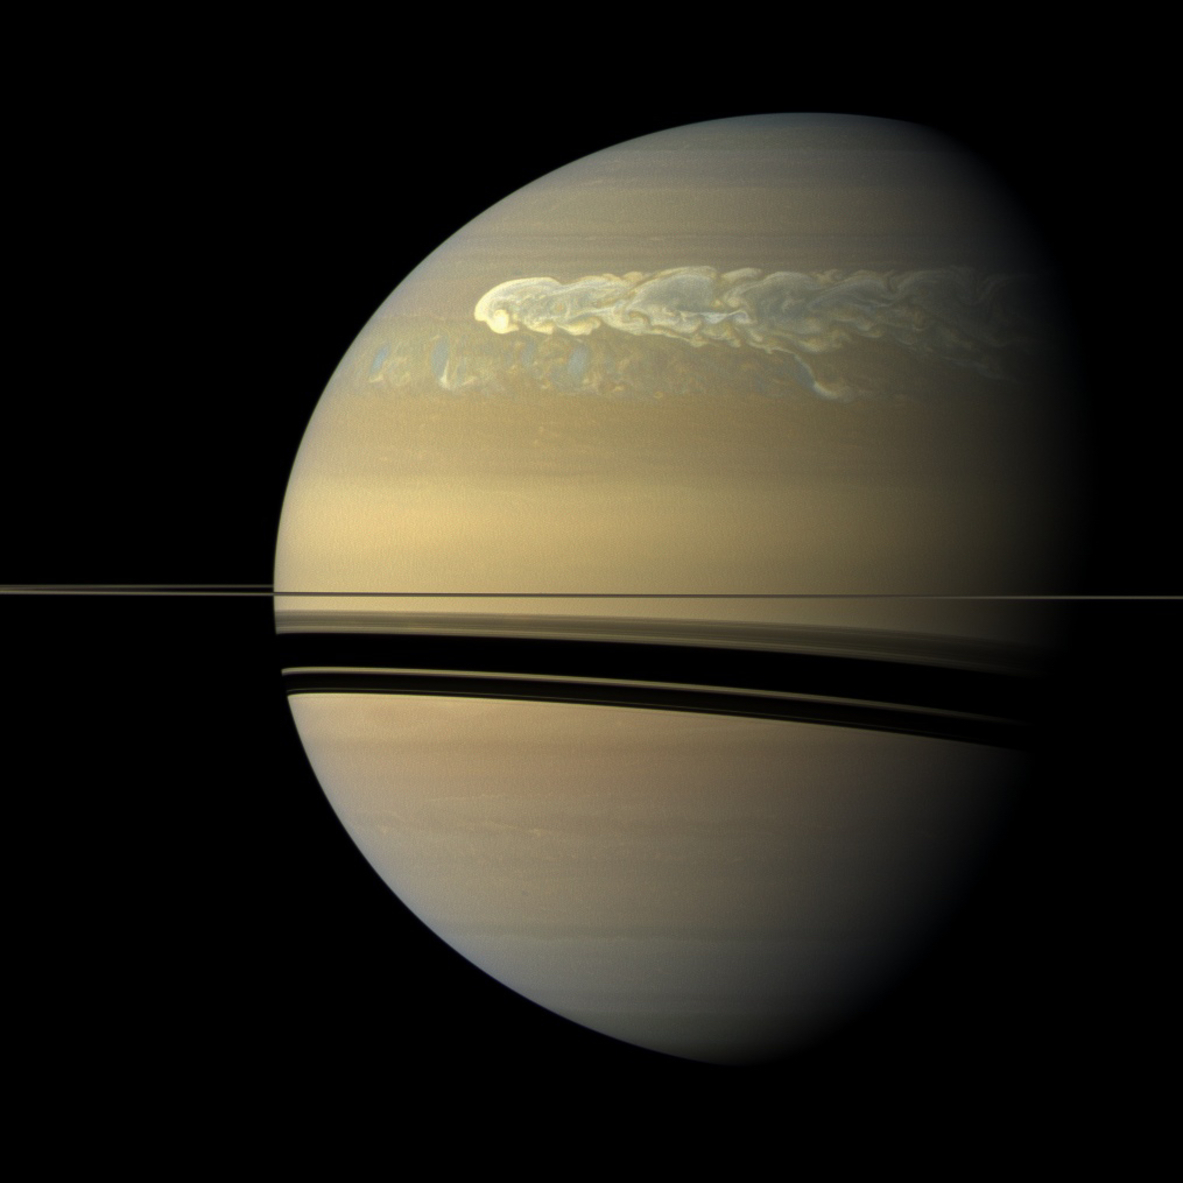 A huge storm churning across the face of Saturn